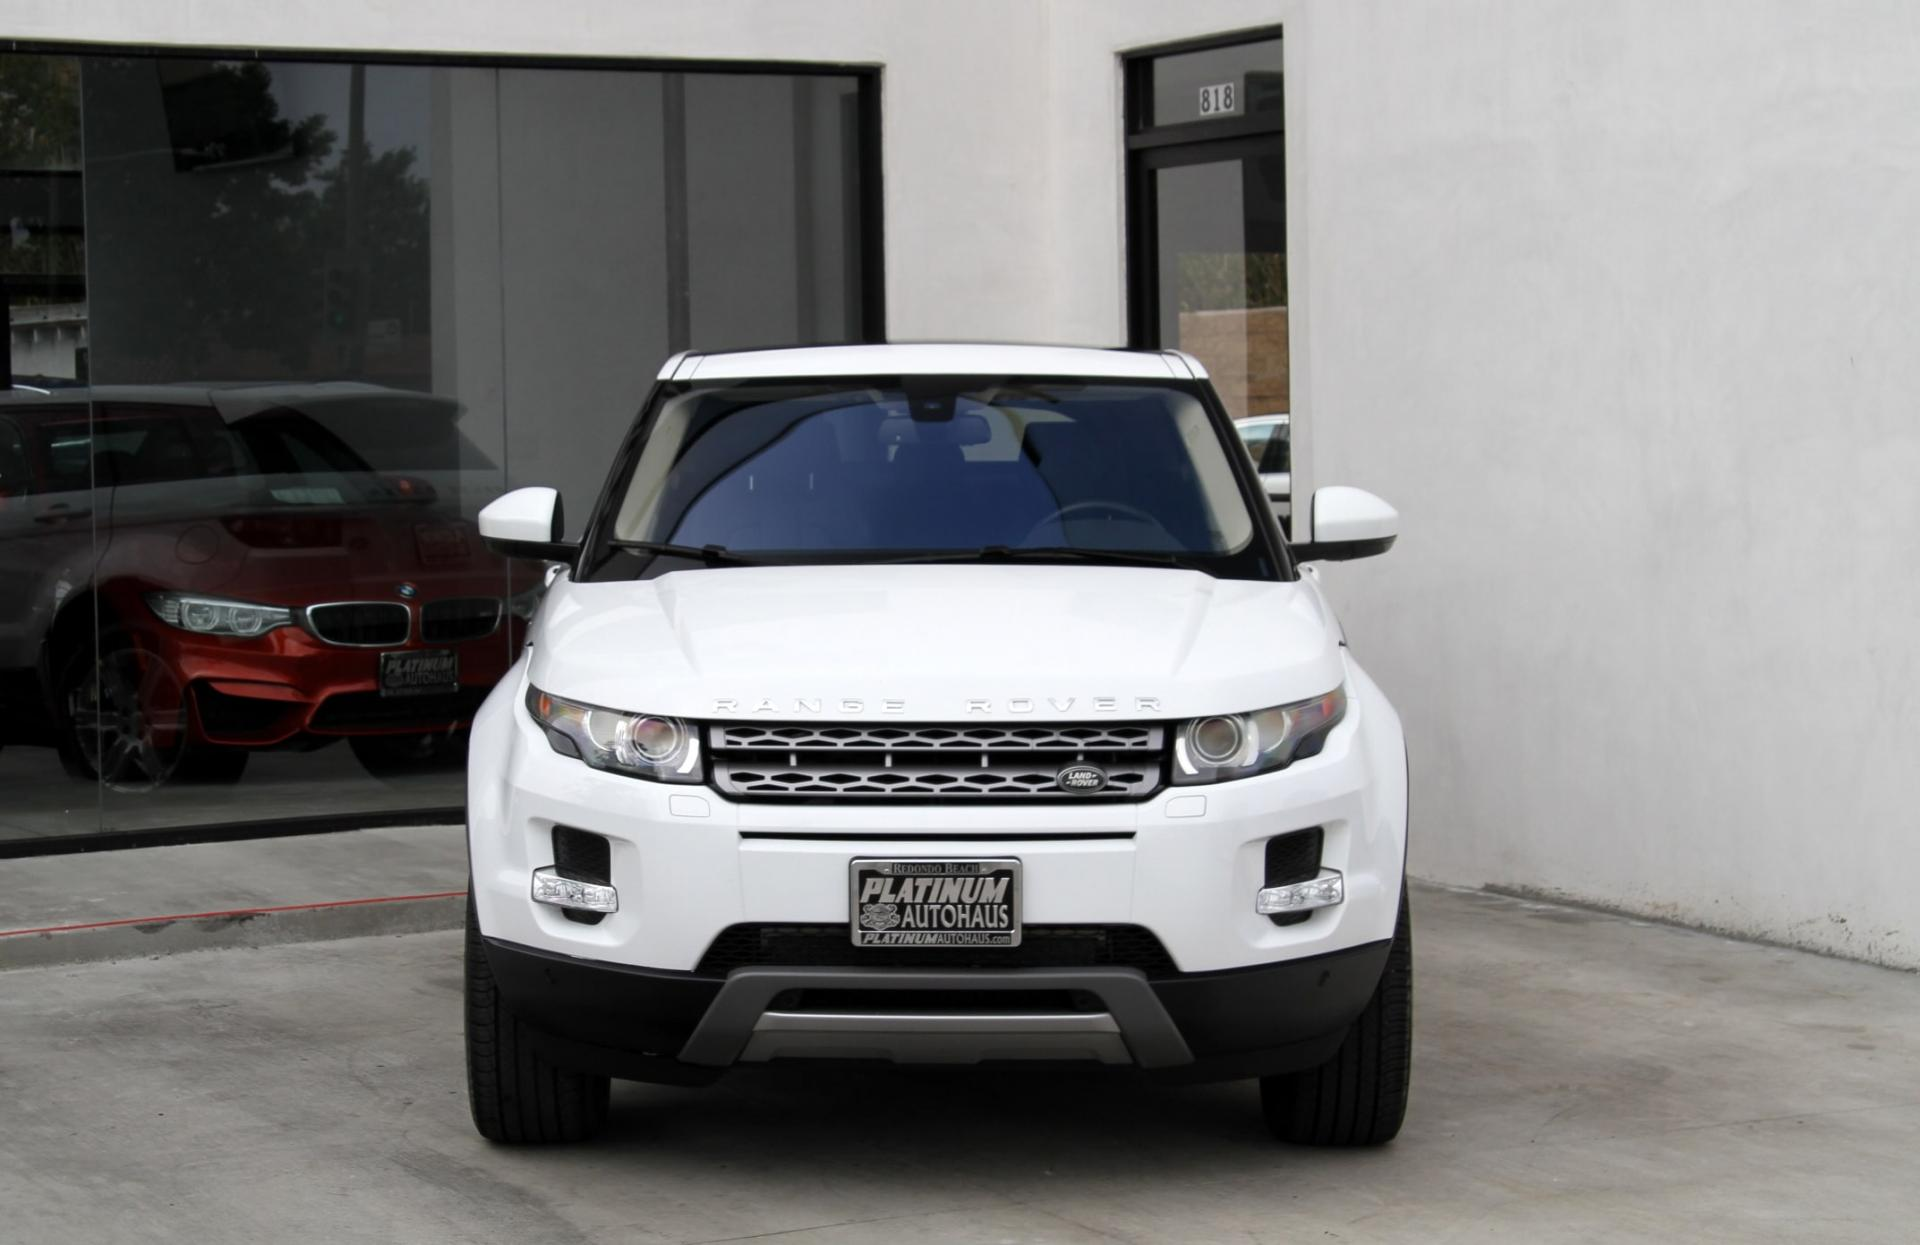 Land Rover For Sale Near Me >> 2014 Land Rover Range Rover Evoque PURE PLUS Stock # 6234 ...